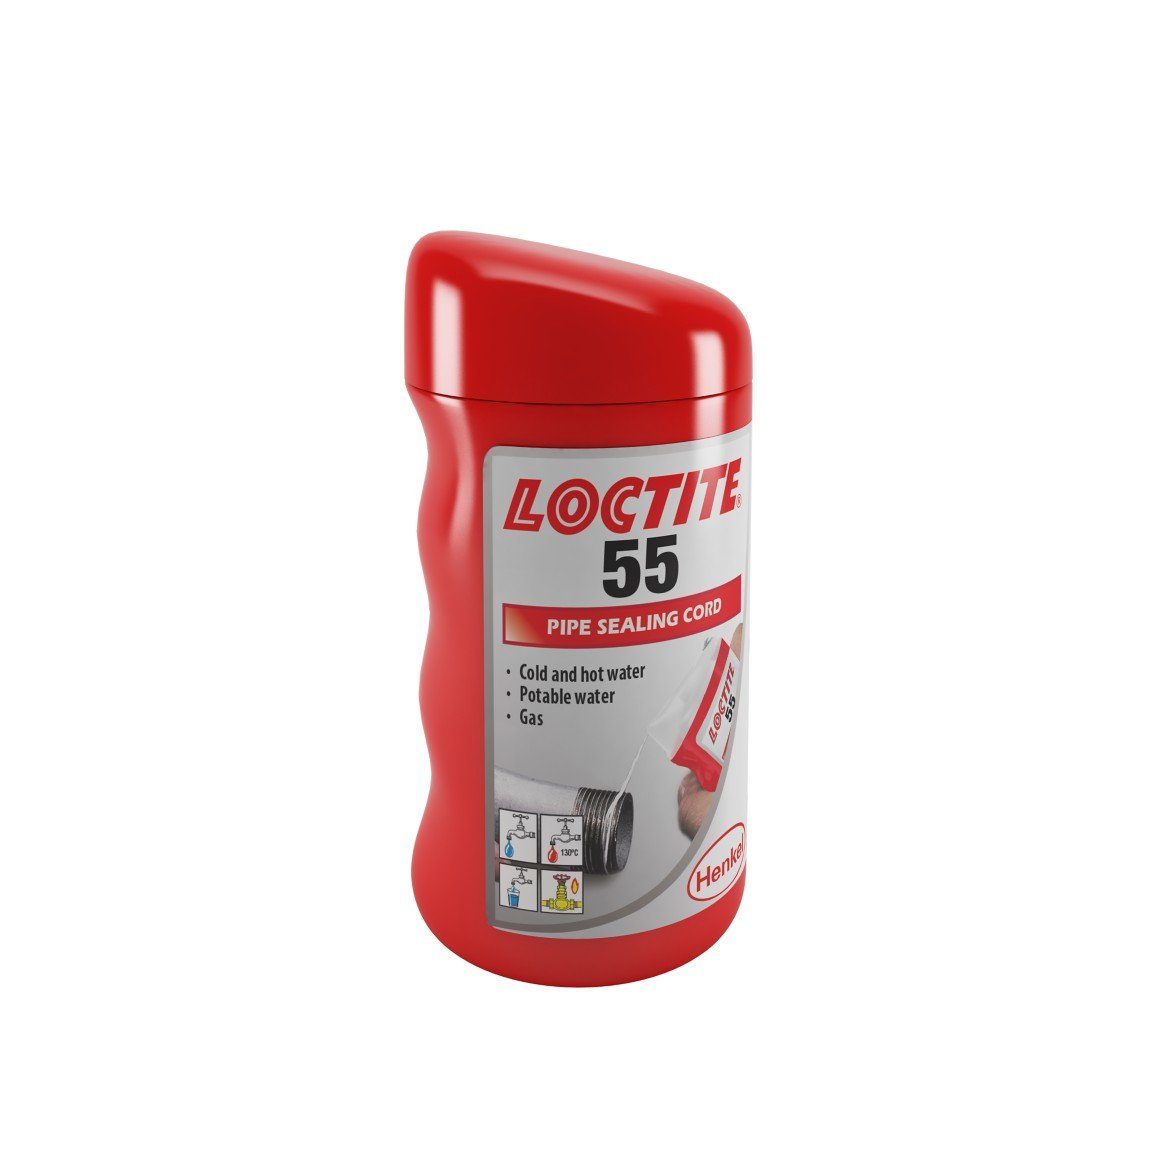 Loctite 55 Pipe Thread Sealing Cord 160 Metres for Hot or Cold Water and Gas - NPH Plumbing And Heating - nphplumbingandheating.co.uk